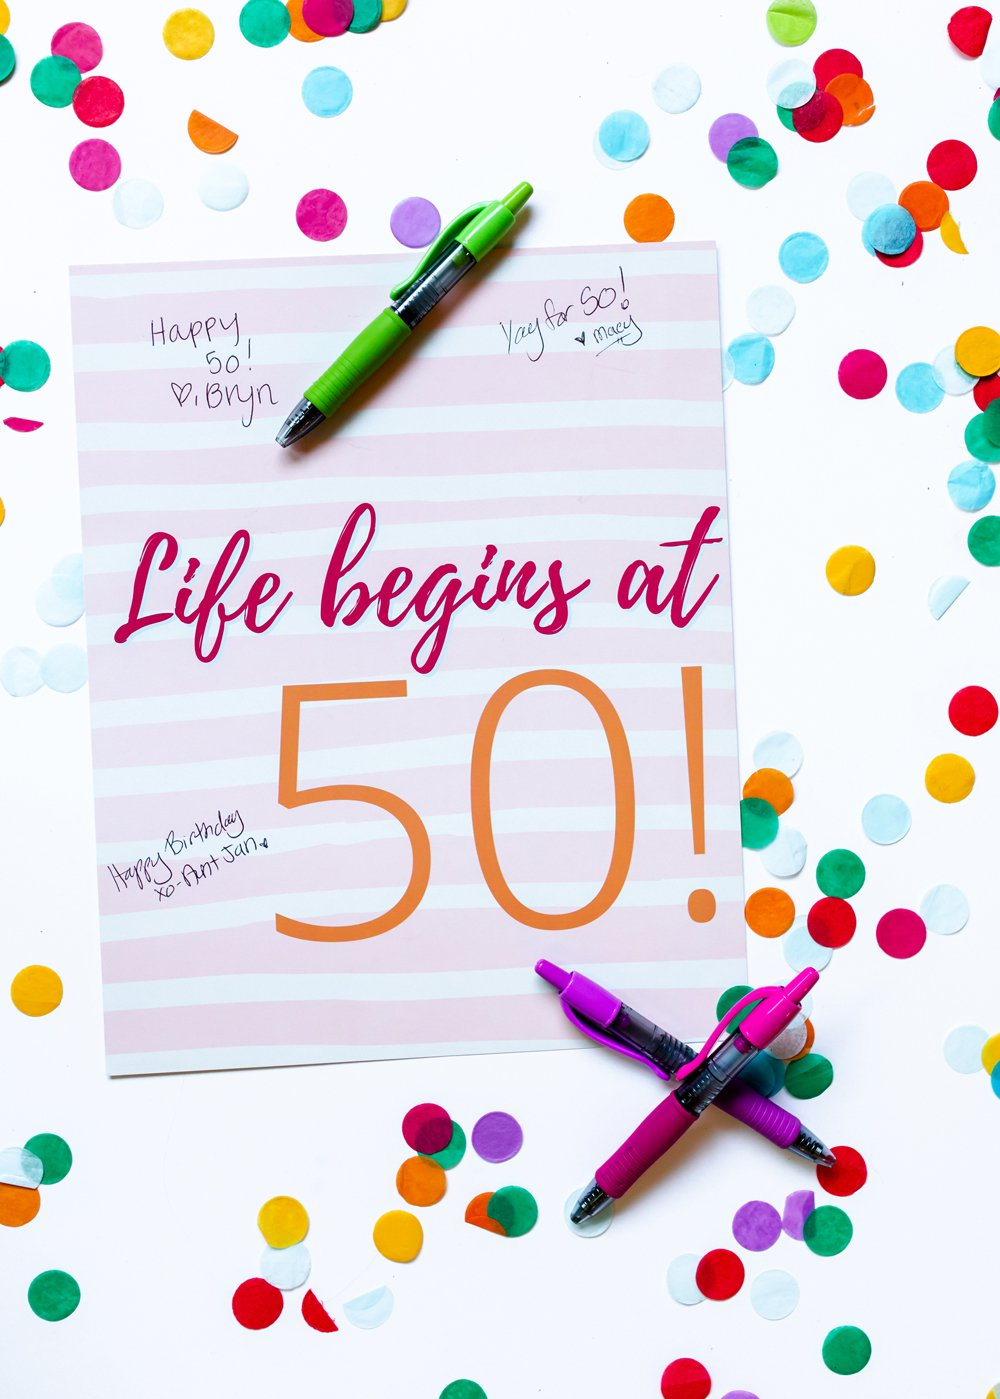 50th birthday guest book sign in poster print